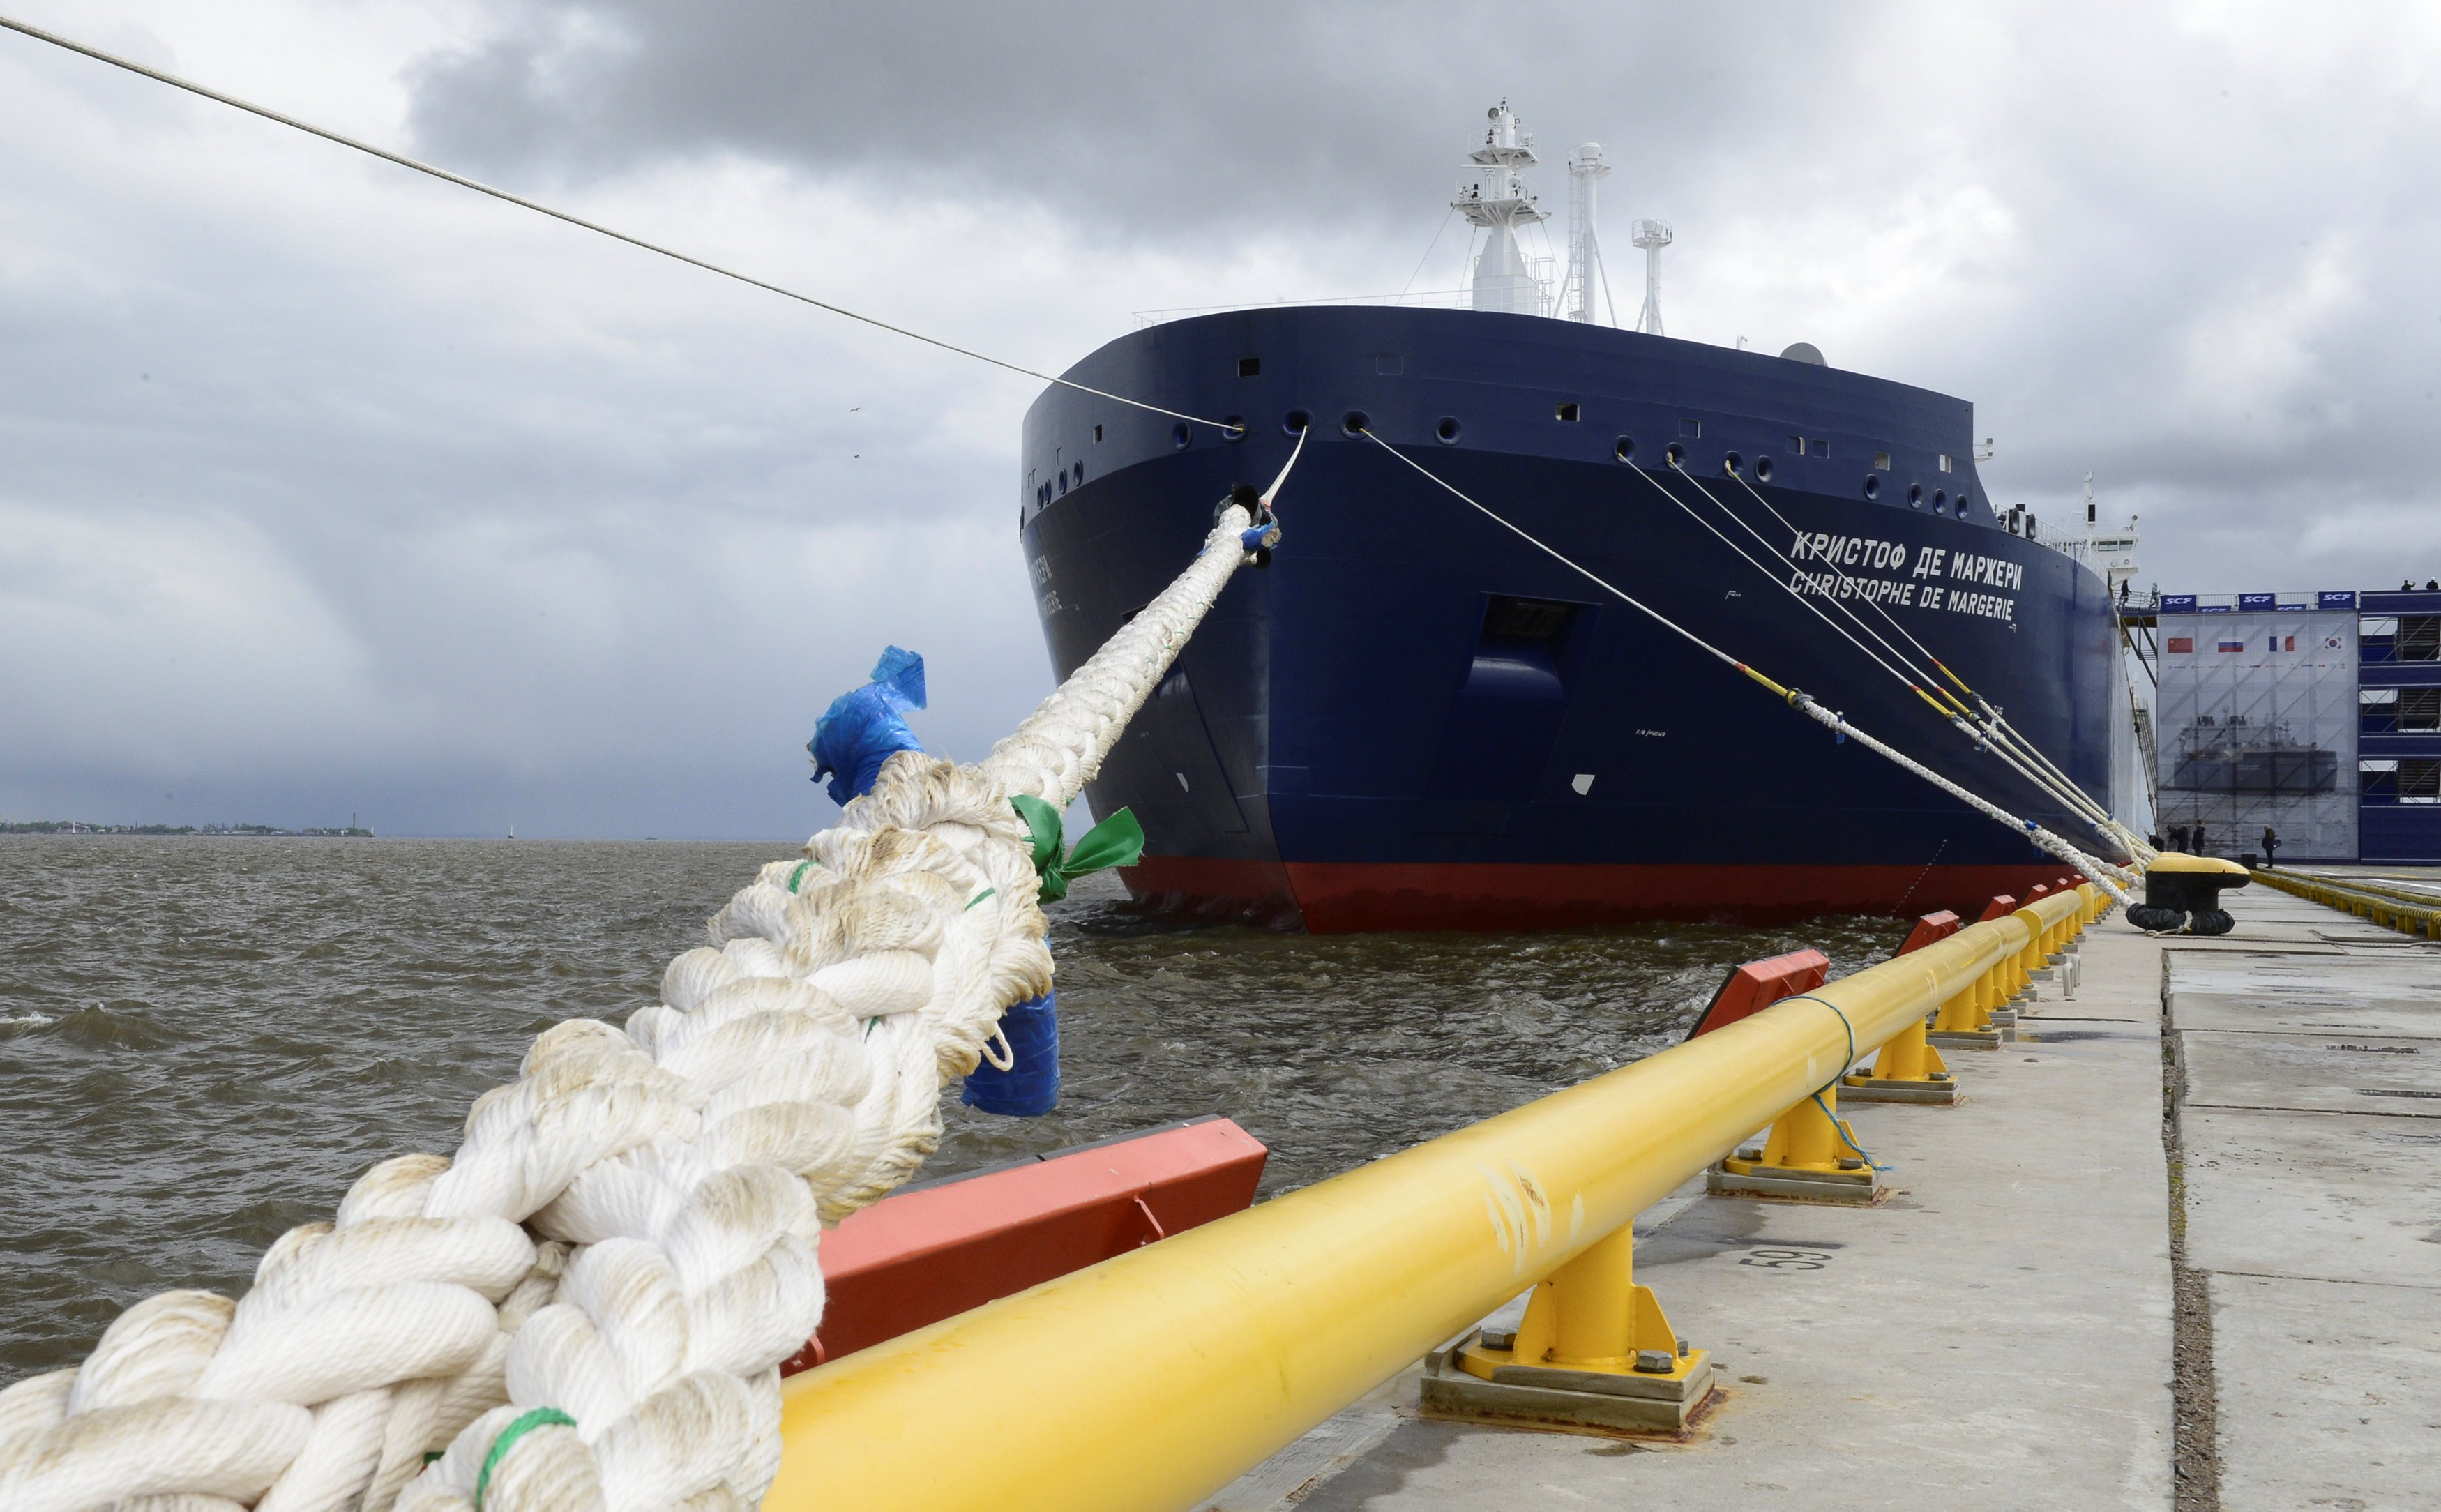 At naming ceremony for Russia's icebreaking LNG tanker, Putin advances vision of Arctic energy future